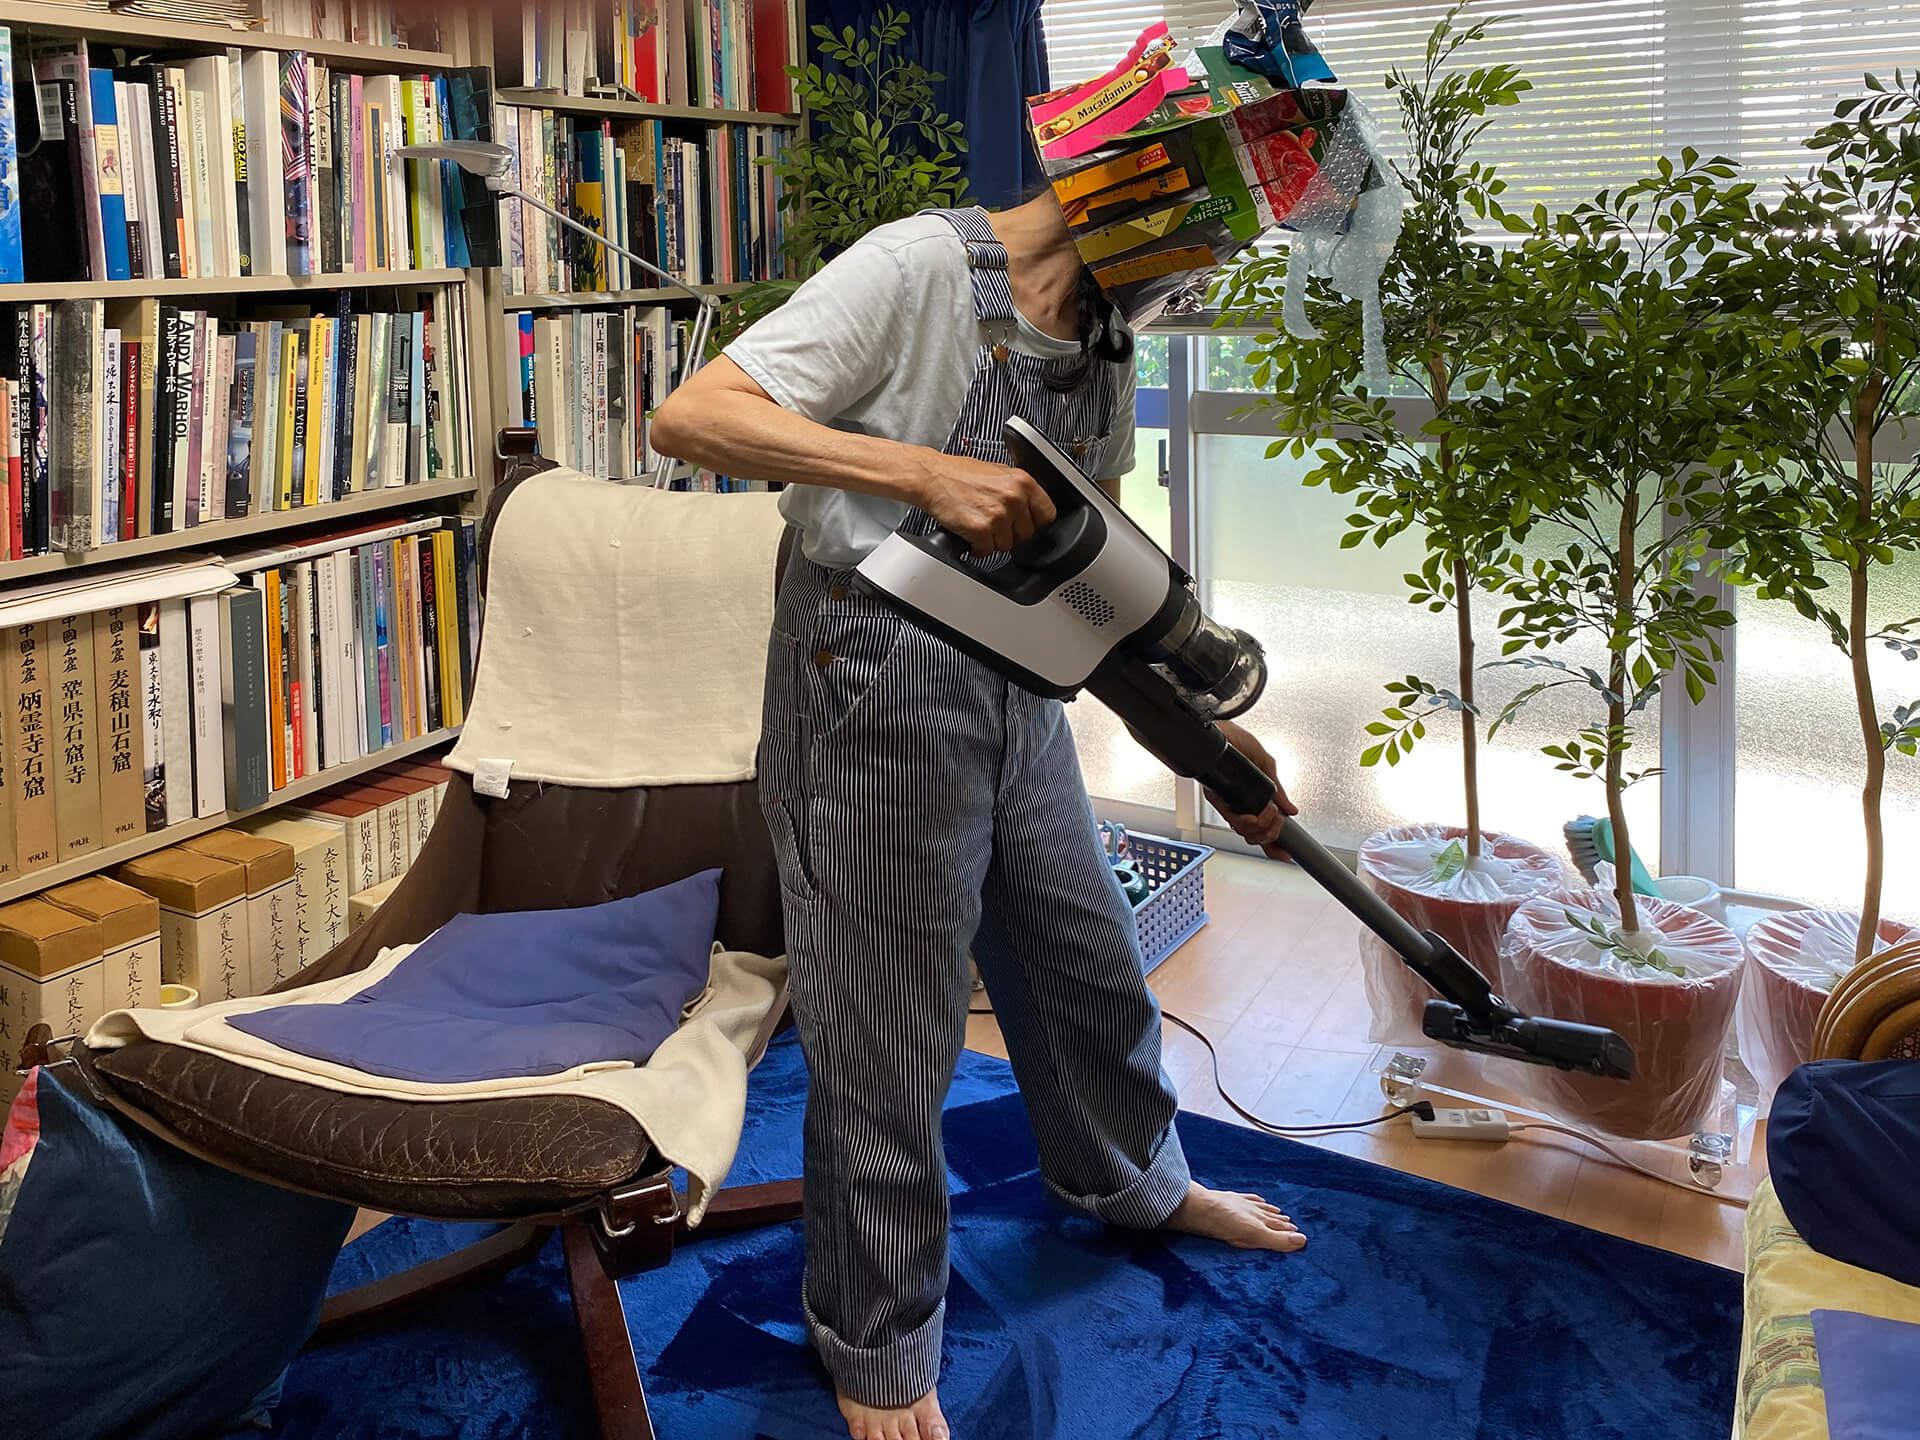 Another participant vacuum-cleaning the house for project Broom Stars | Broom Stars by Masaru Iwai at Yokohama Triennale 2020| STIRworld